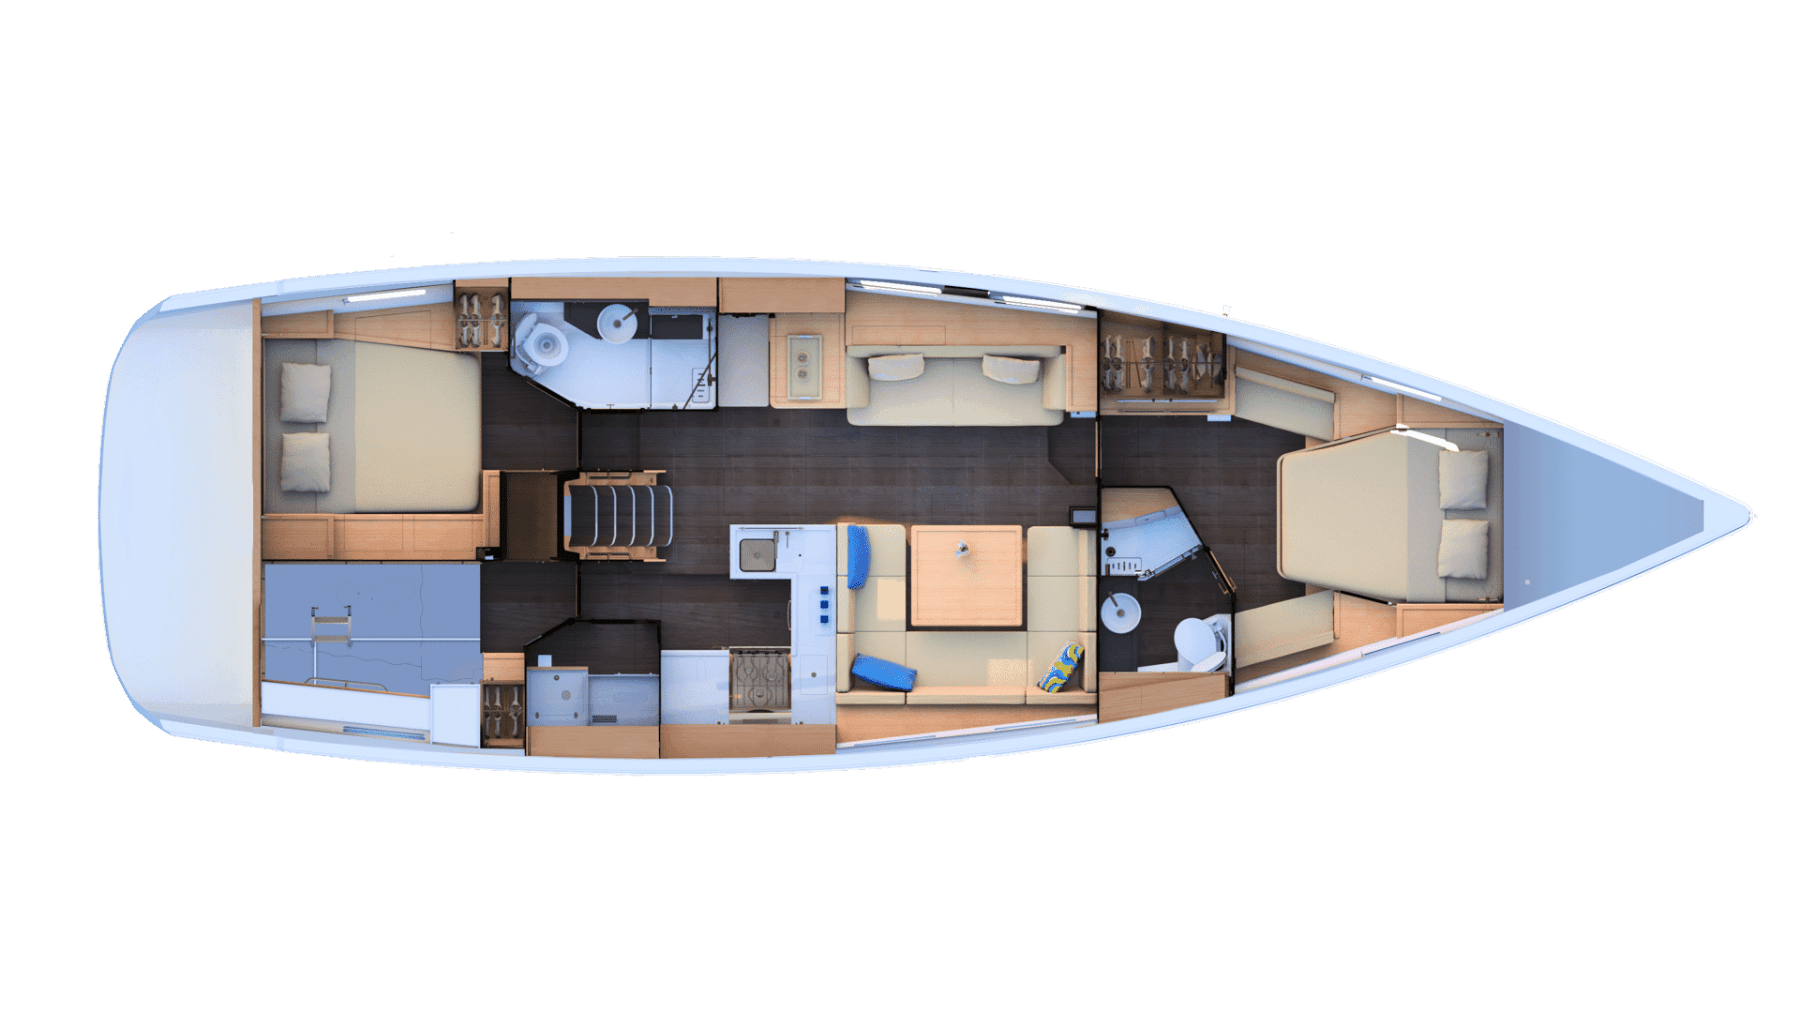 Jeanneau-51-layout-3-charter-ownership-yacht